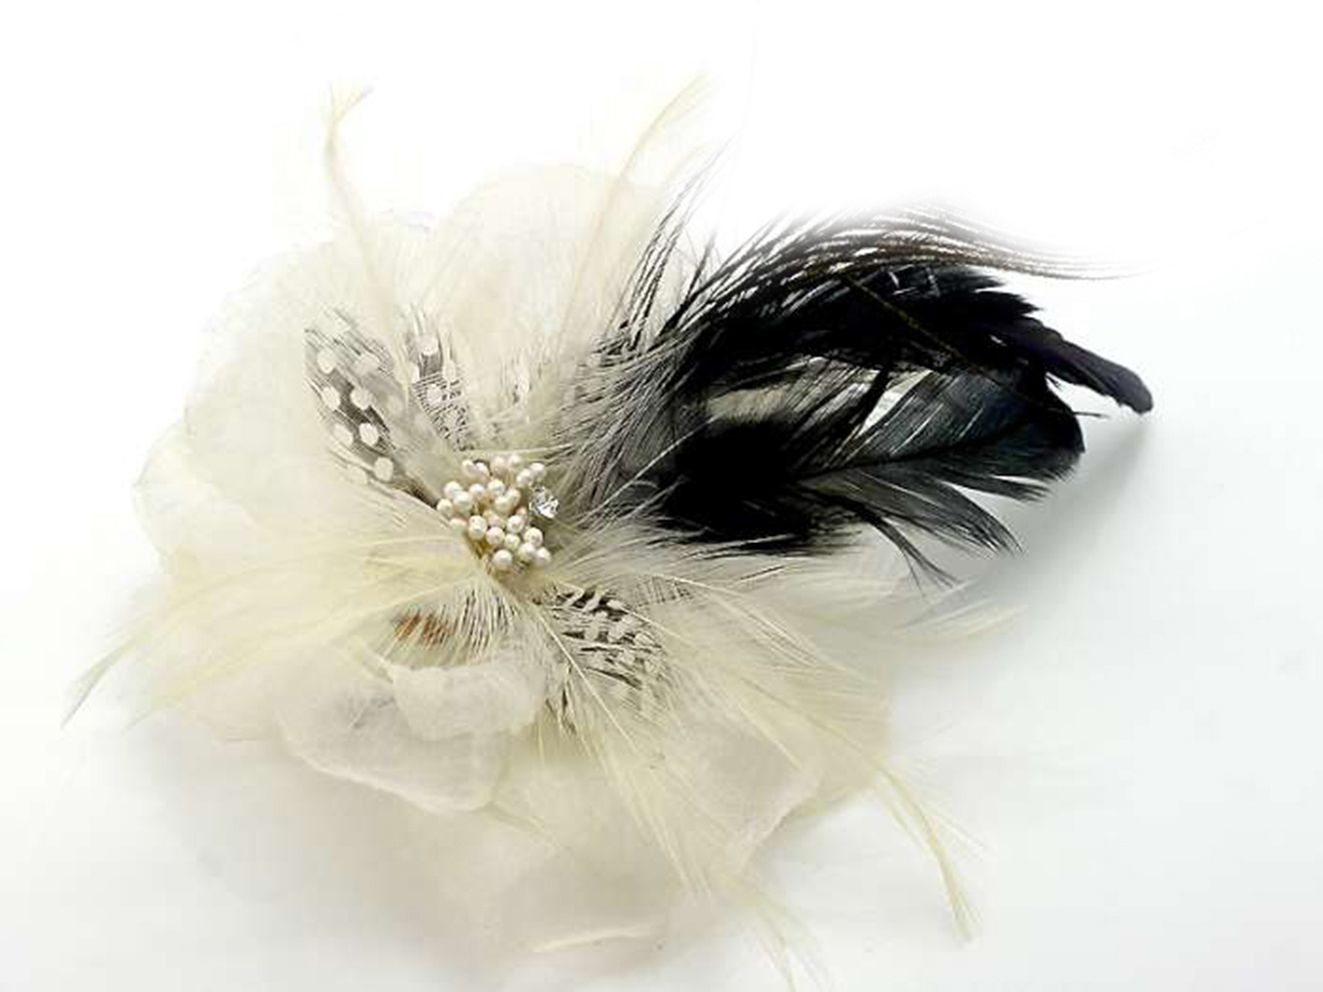 http://www.conmigolondon.co.uk/ekmps/shops/conmigo/images/bc9012-beautiful-white-fabric-flower-and-feather-hair-clip-brooch-%5b2%5d-22330-p.jpg